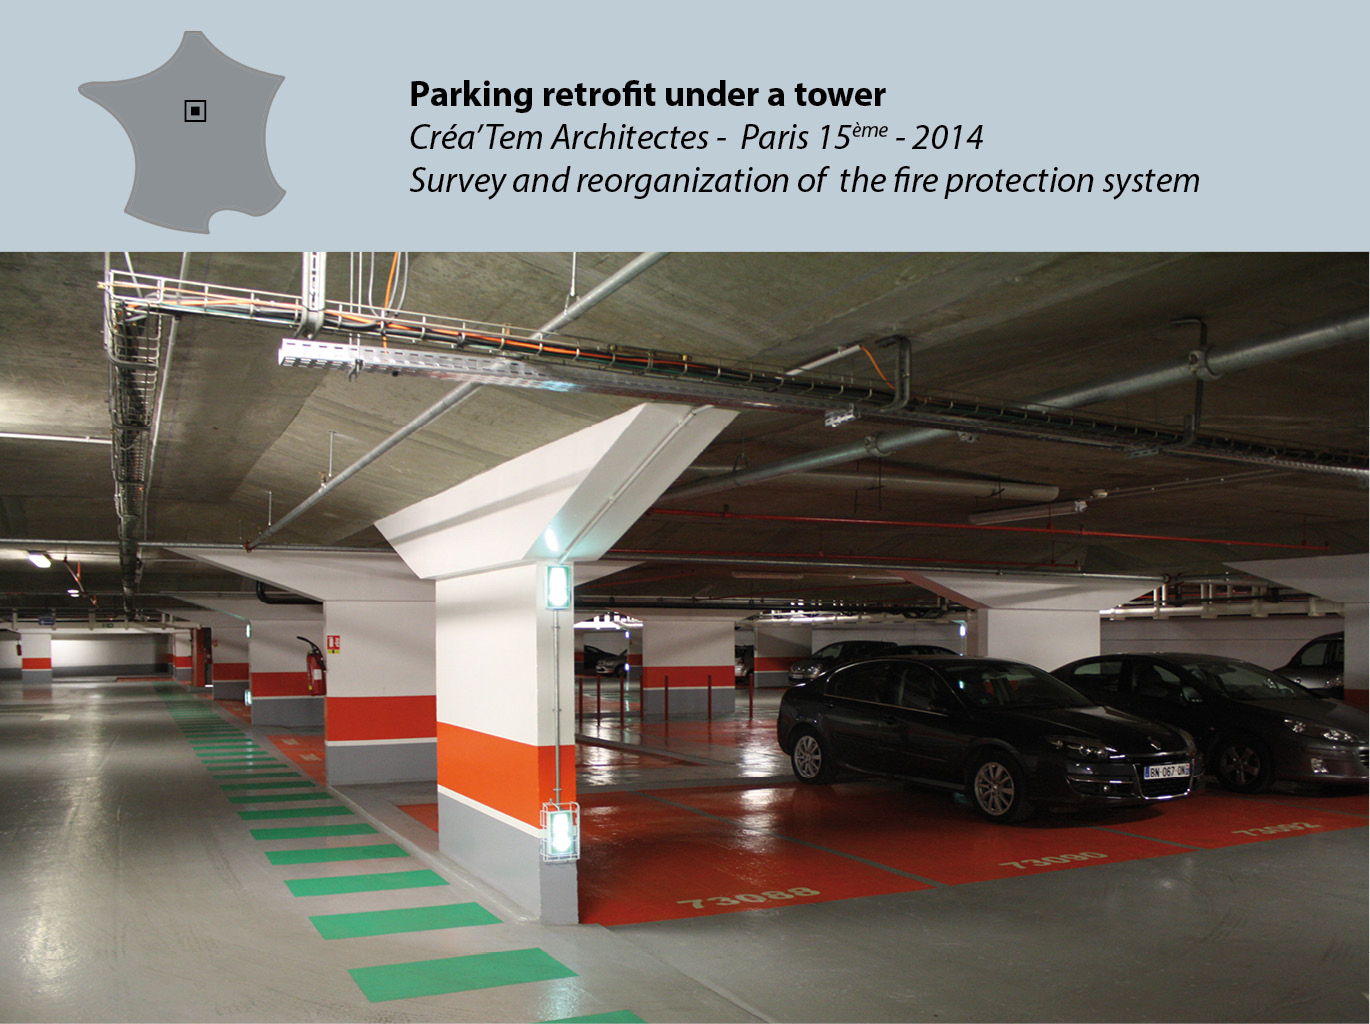 Parking retrofit under a tower